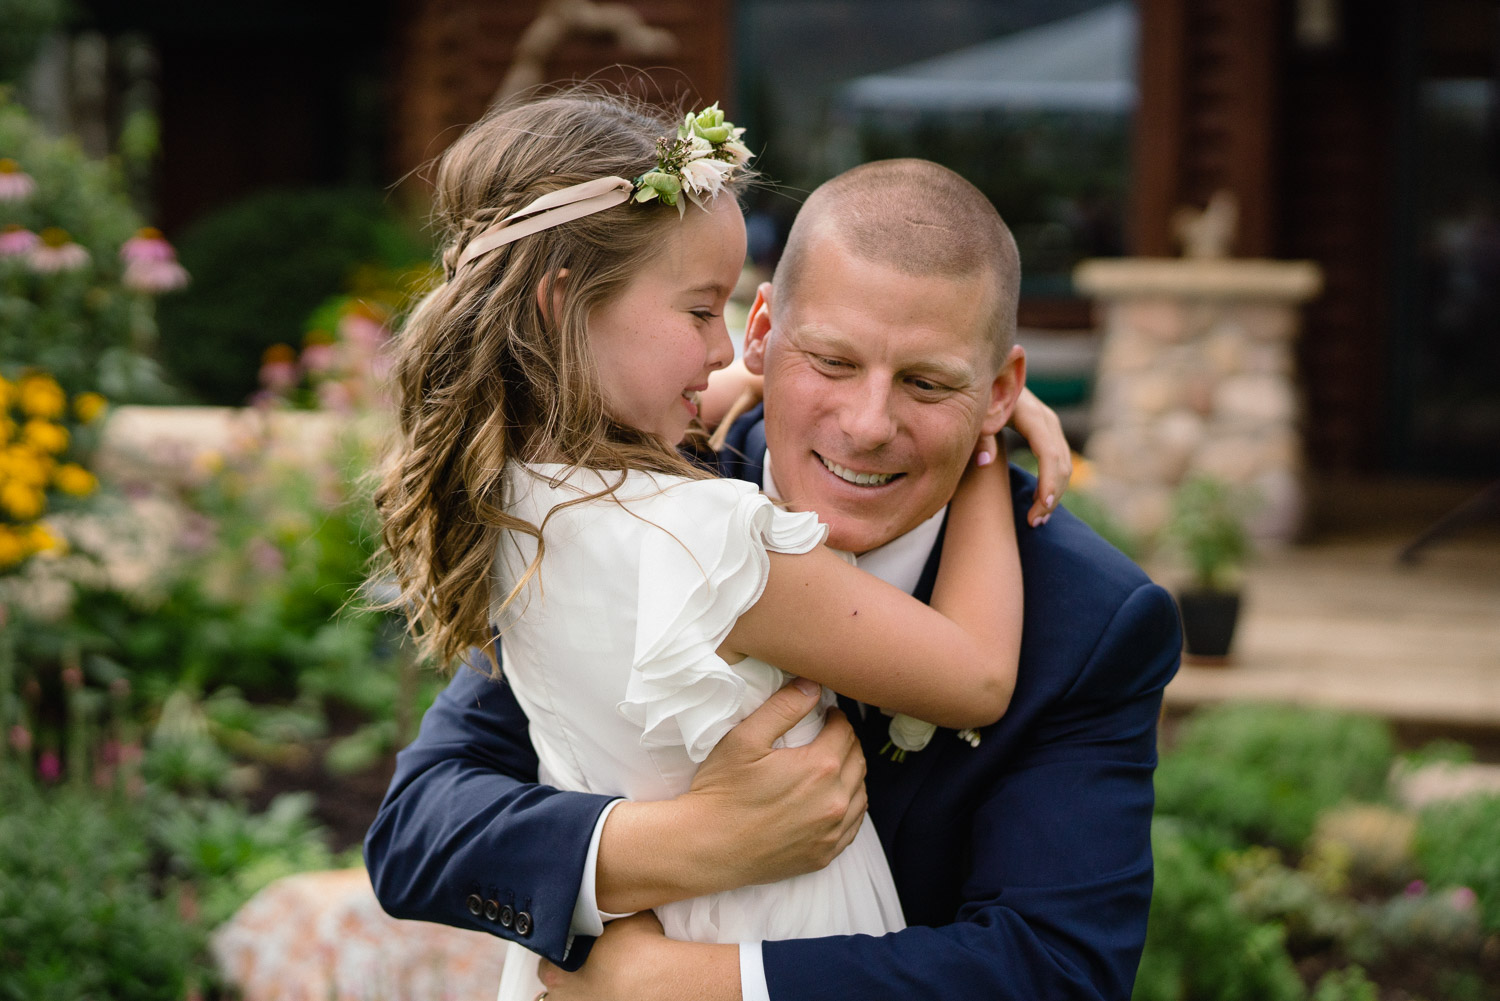 groom hugging girl outside in yard park city wedding